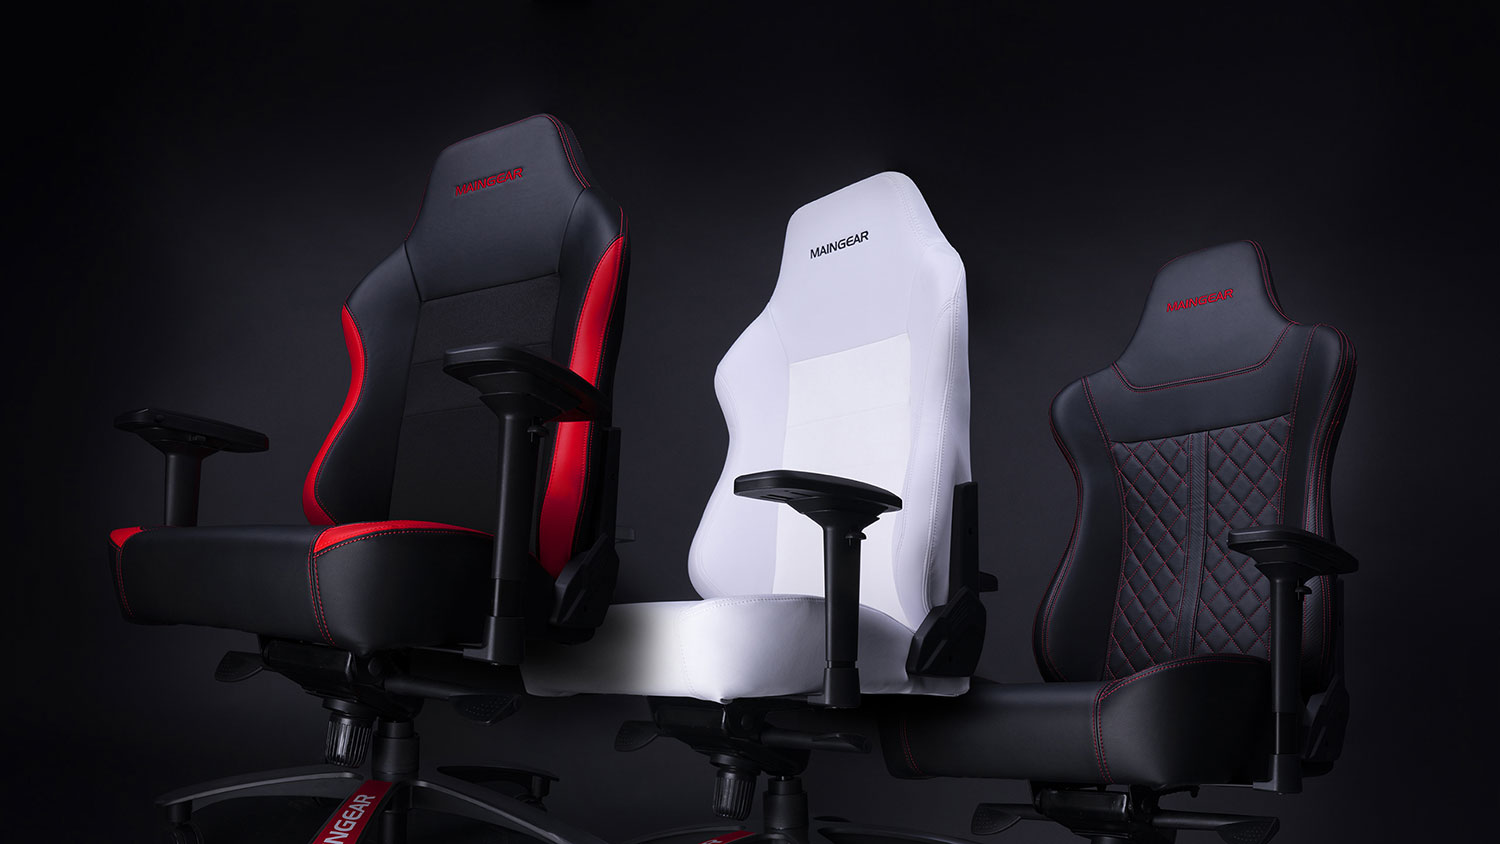 Tremendous Maingear Launches A Gaming Chair As It Expands Into Ibusinesslaw Wood Chair Design Ideas Ibusinesslaworg